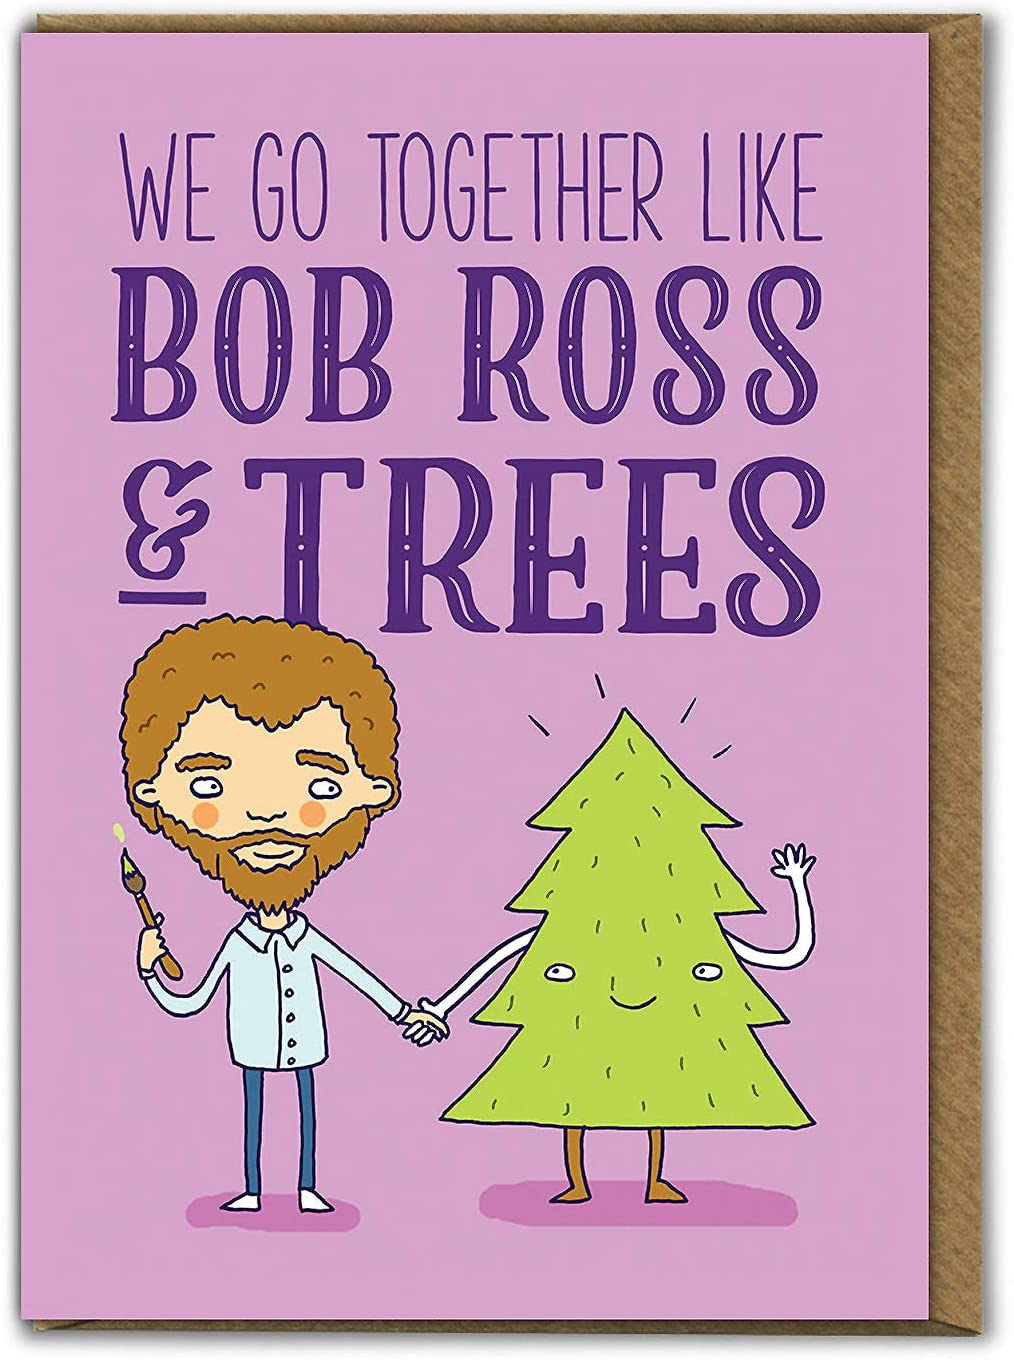 Funny Humorous Bob Ross And Trees Birthday Greetings Card Tog012 Amazon Co Uk Office Products